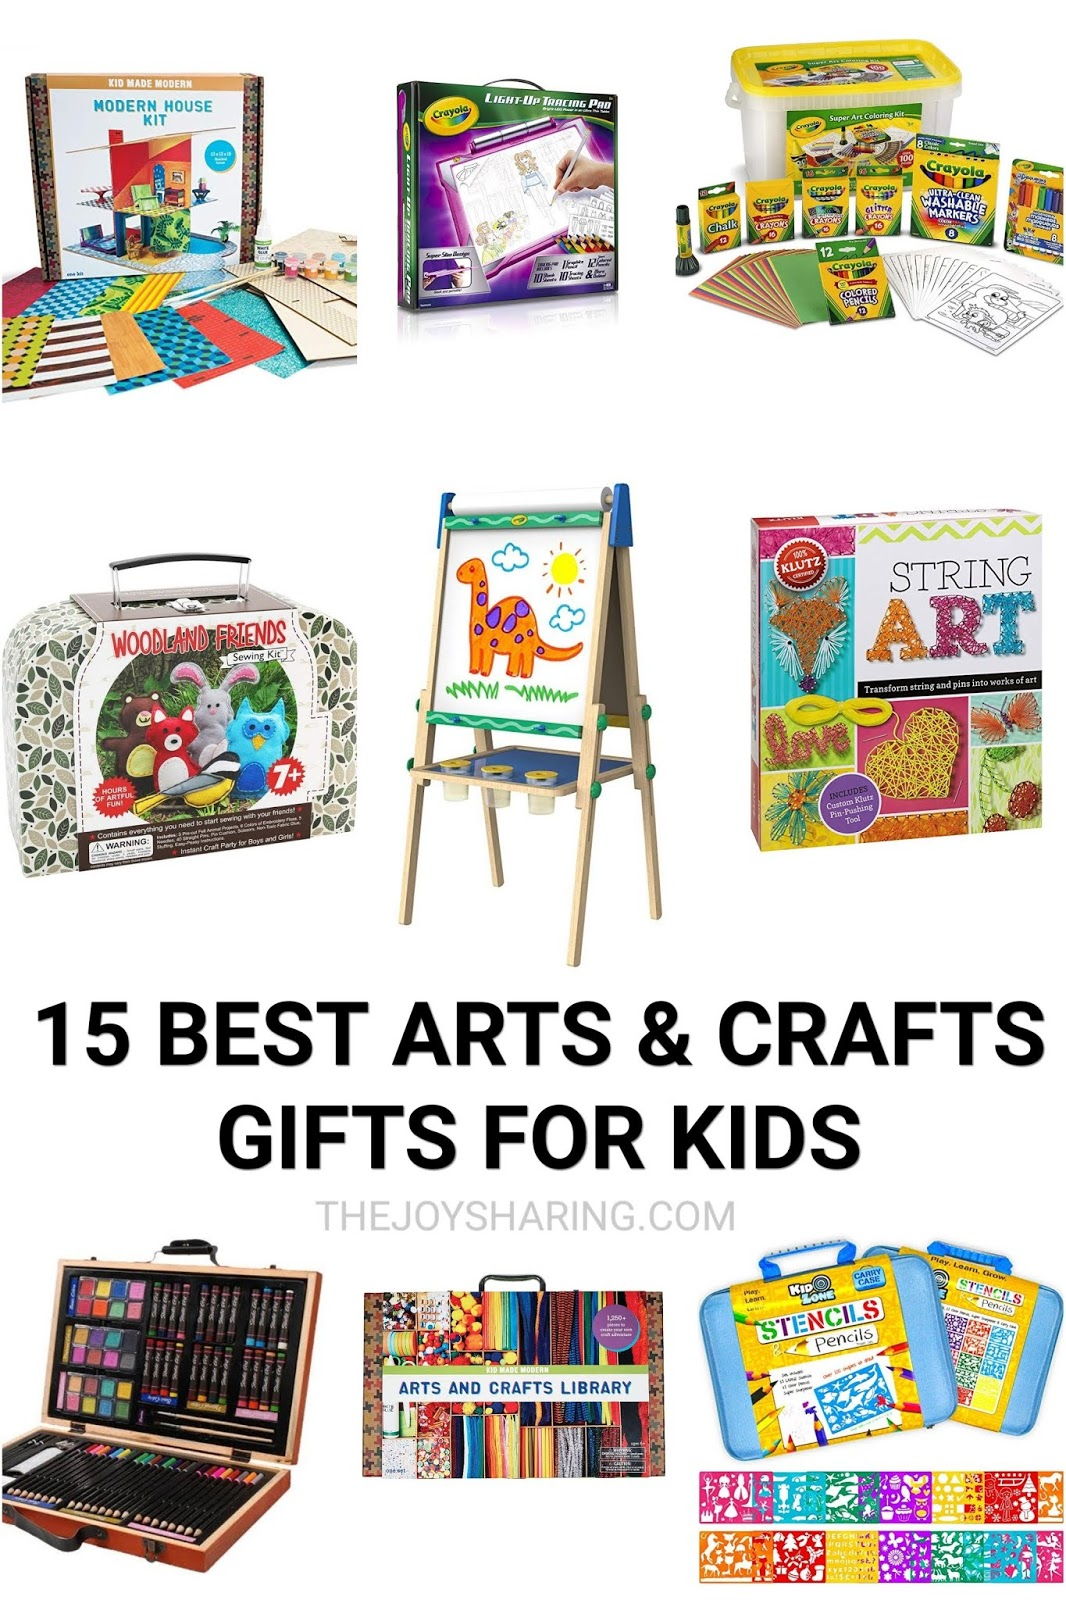 15 Best Arts and Crafts Gifts for Kids - The Joy of Sharing